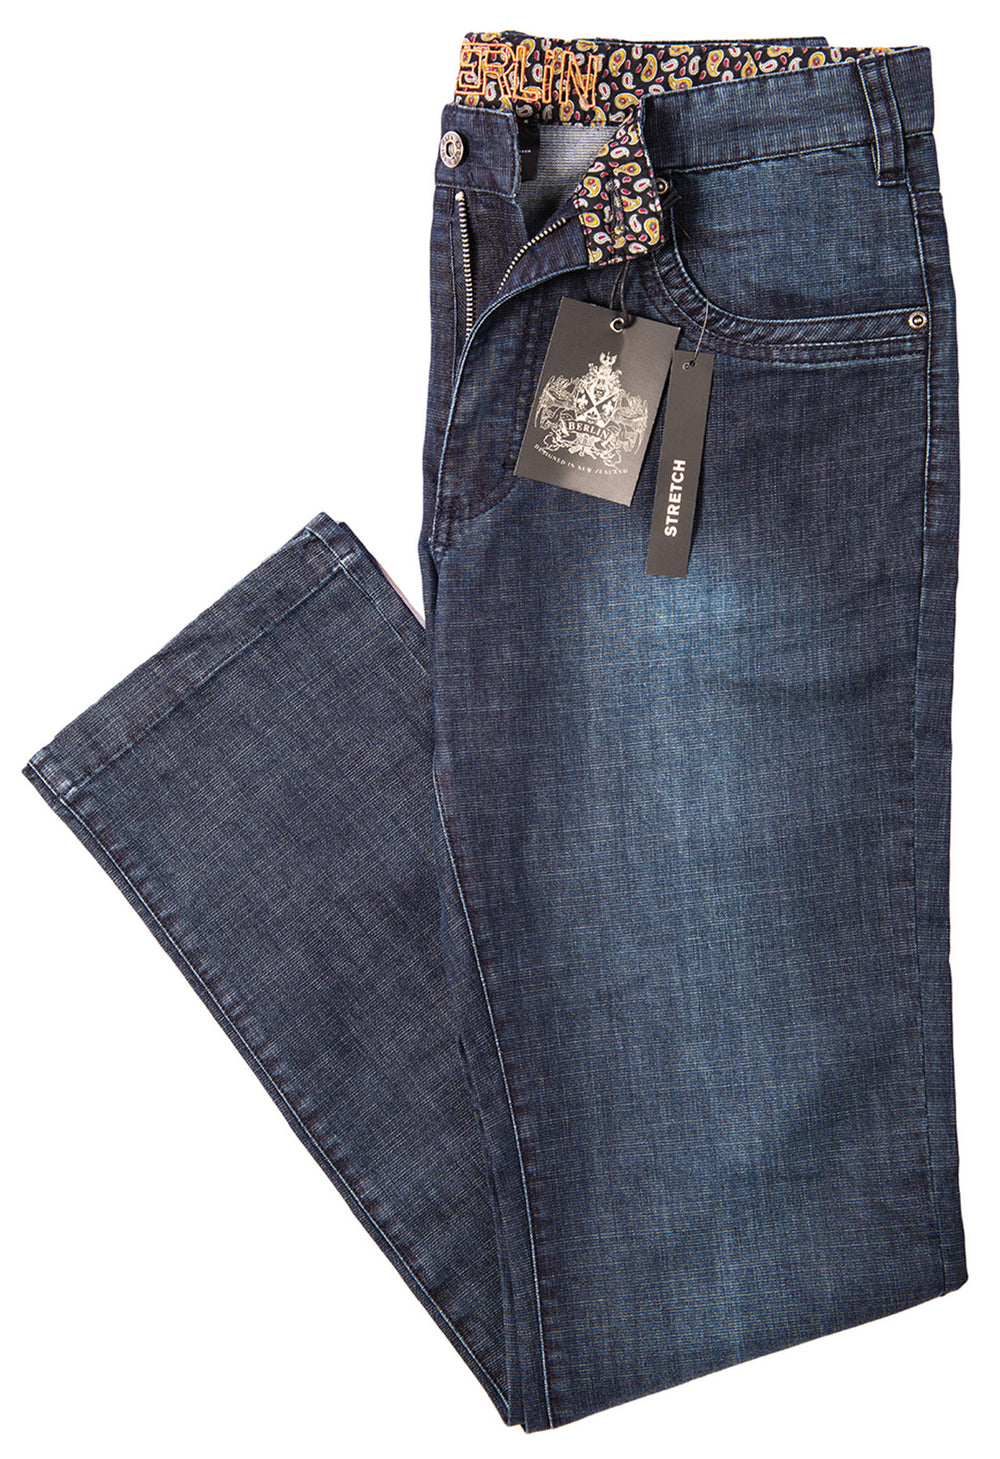 Berlin Square Weave  Blast Wash Jean